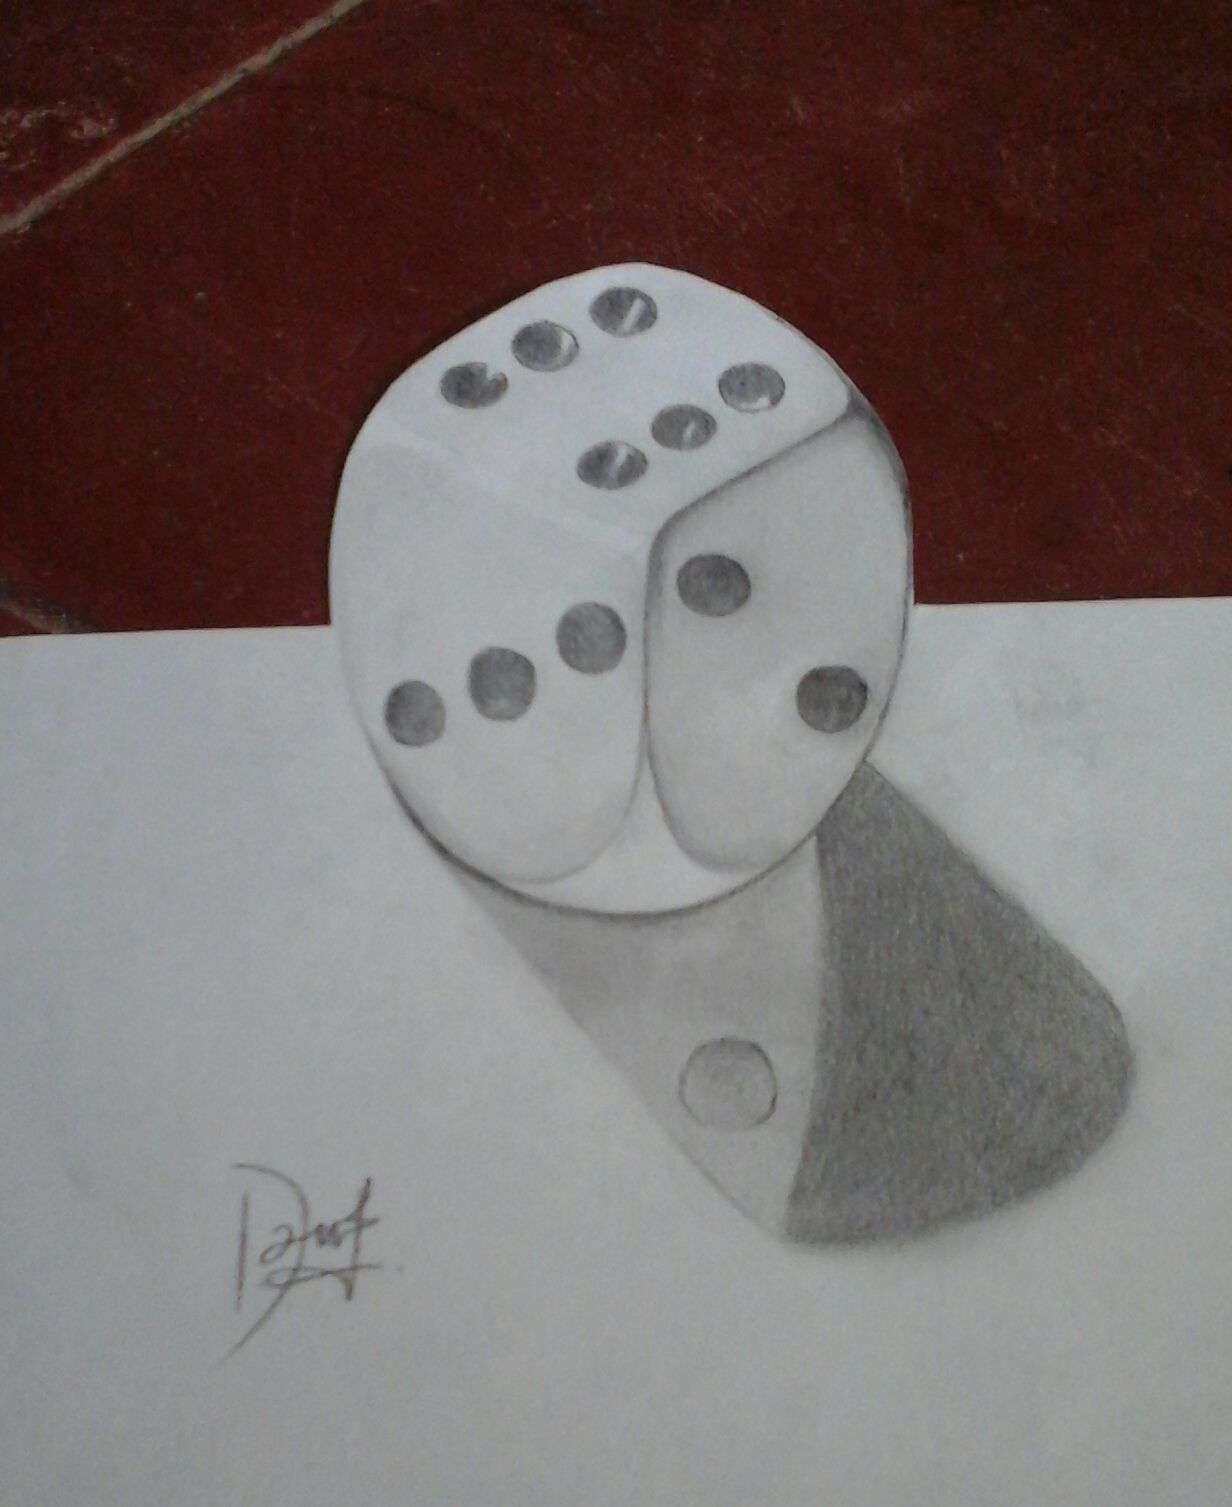 First try drawing 3D